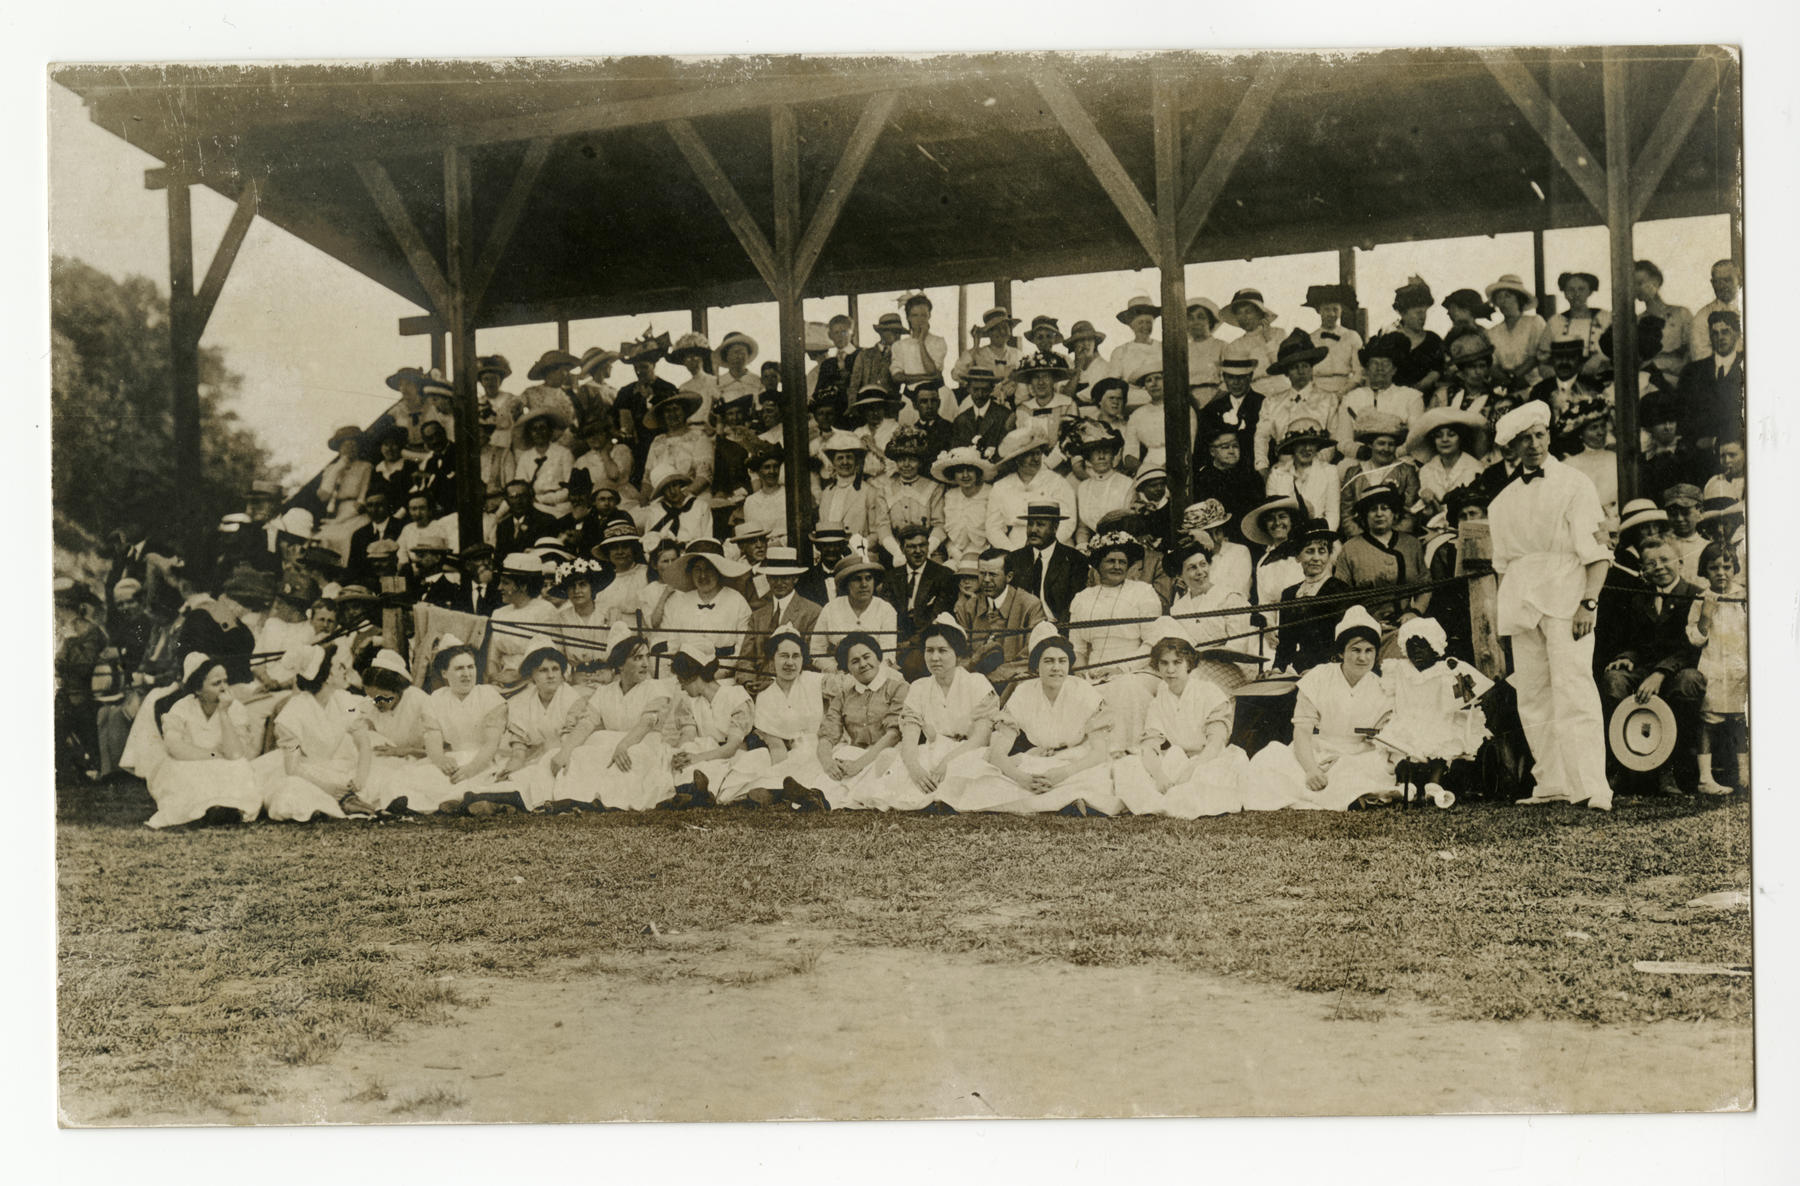 Spectators in the grandstand at the doctors vs dentists baseball game, a special fundraising event for Muhlenberg Hospital, at Parker Field (now the Hub Stine Sports Complex) in Plainfield, New Jersey, on June 14, 1913. - BL-49.2008.13 (Paul R. Collier / National Baseball Hall of Fame Library)